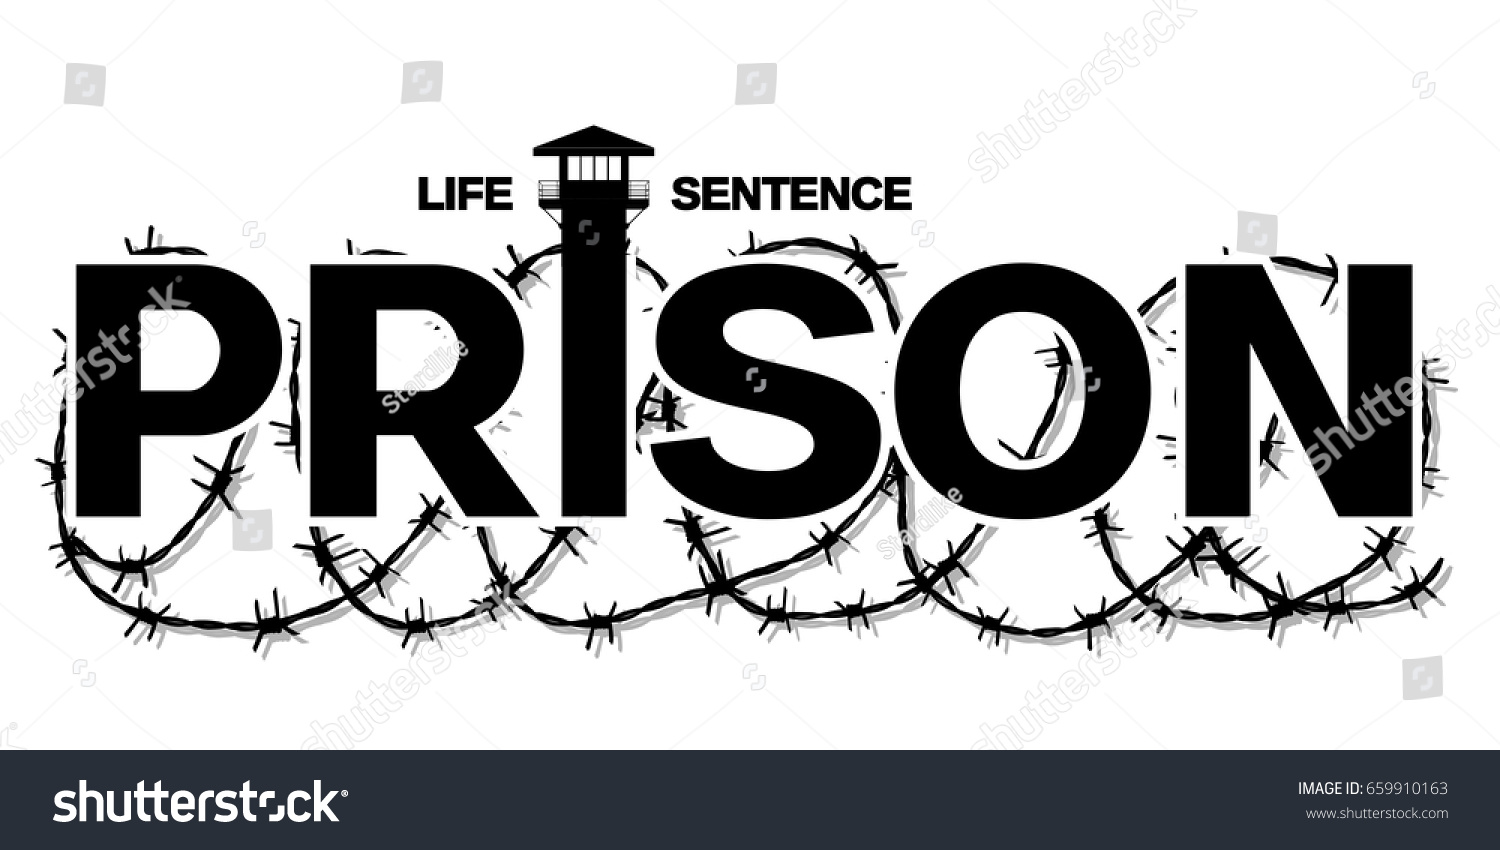 Prison Black Vector Barbed Wire Tattoo Stock Vector 659910163 ...